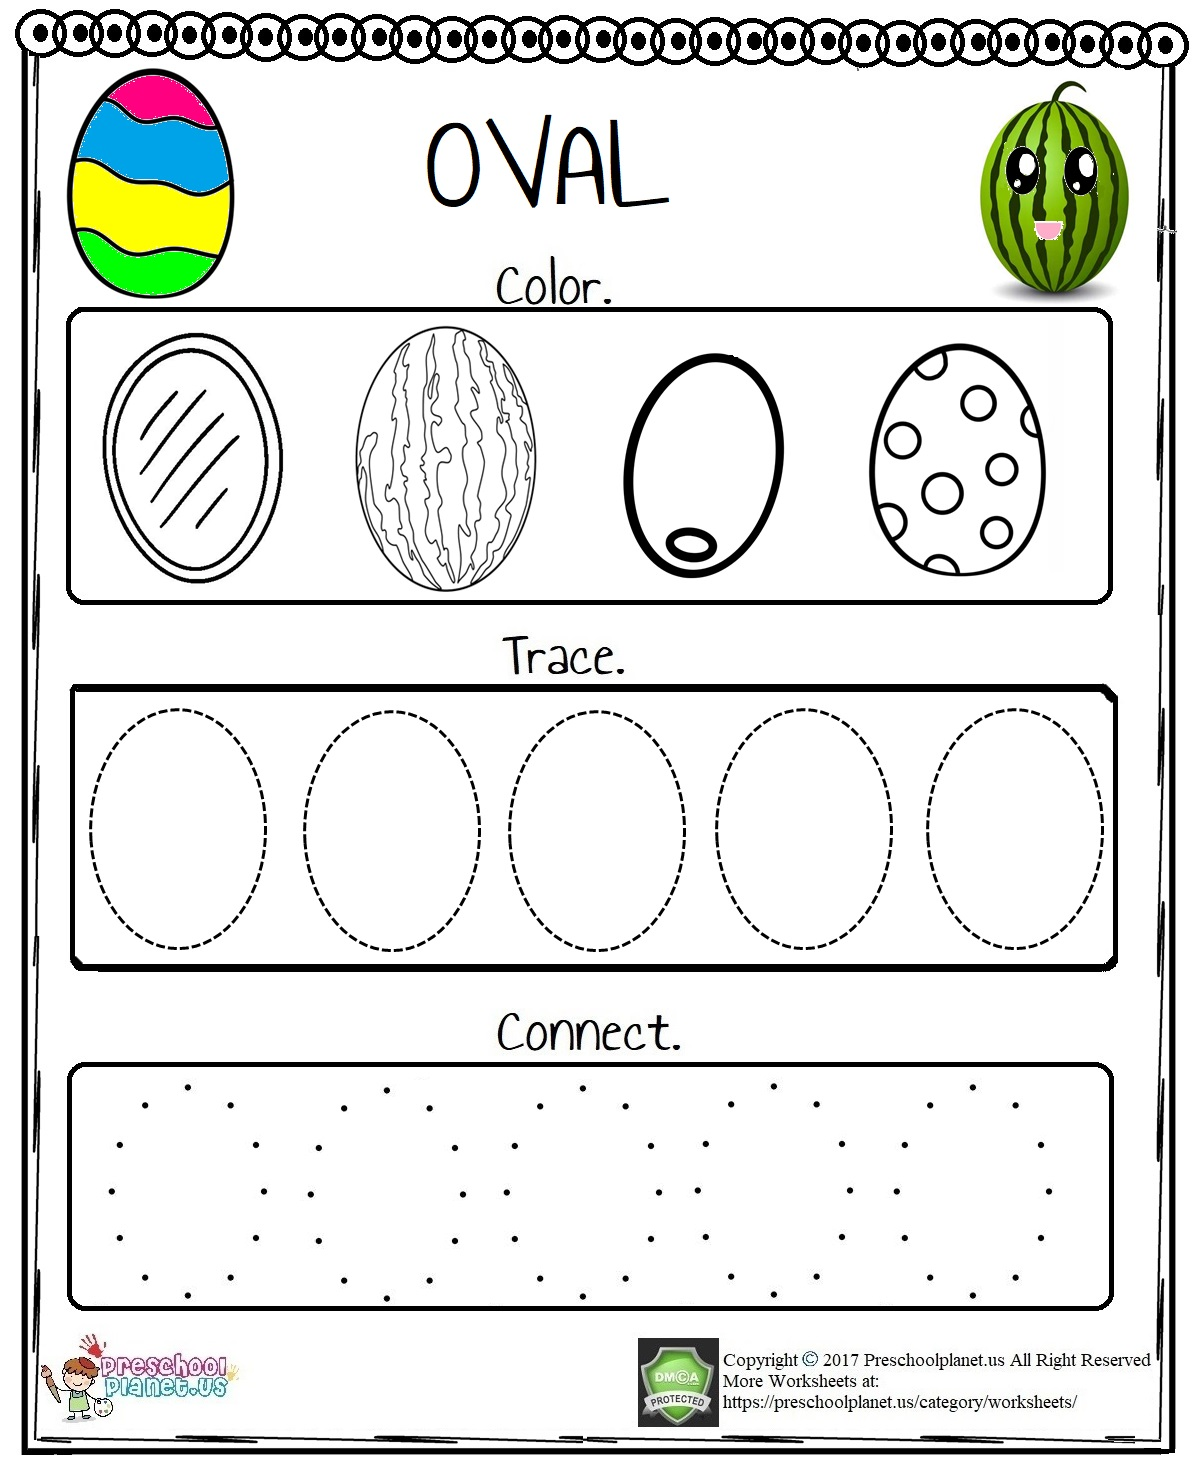 Easter Egg Trace Worksheet Preschoolplanet